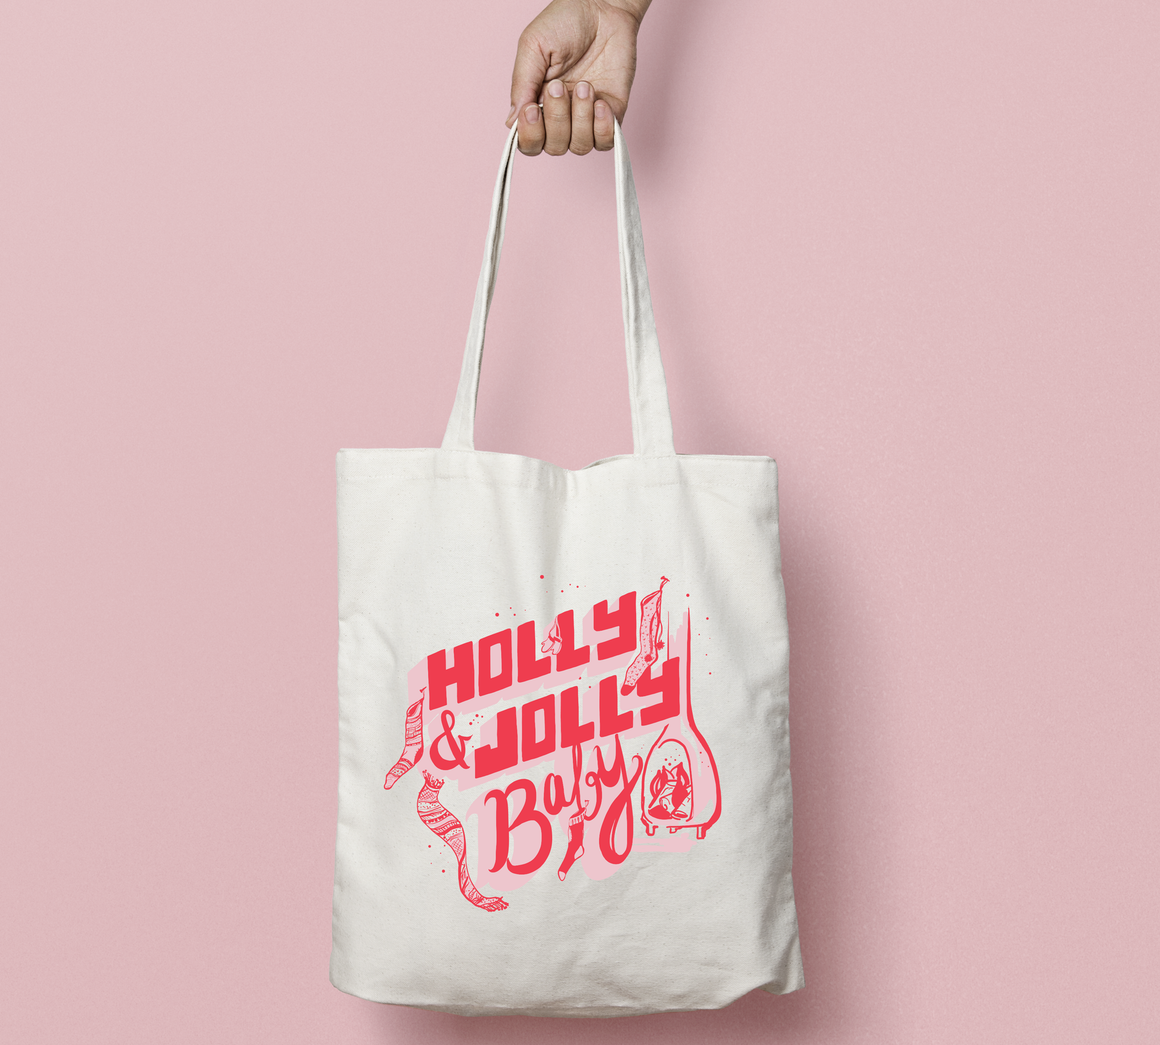 Holly & Jolly Holiday Tote